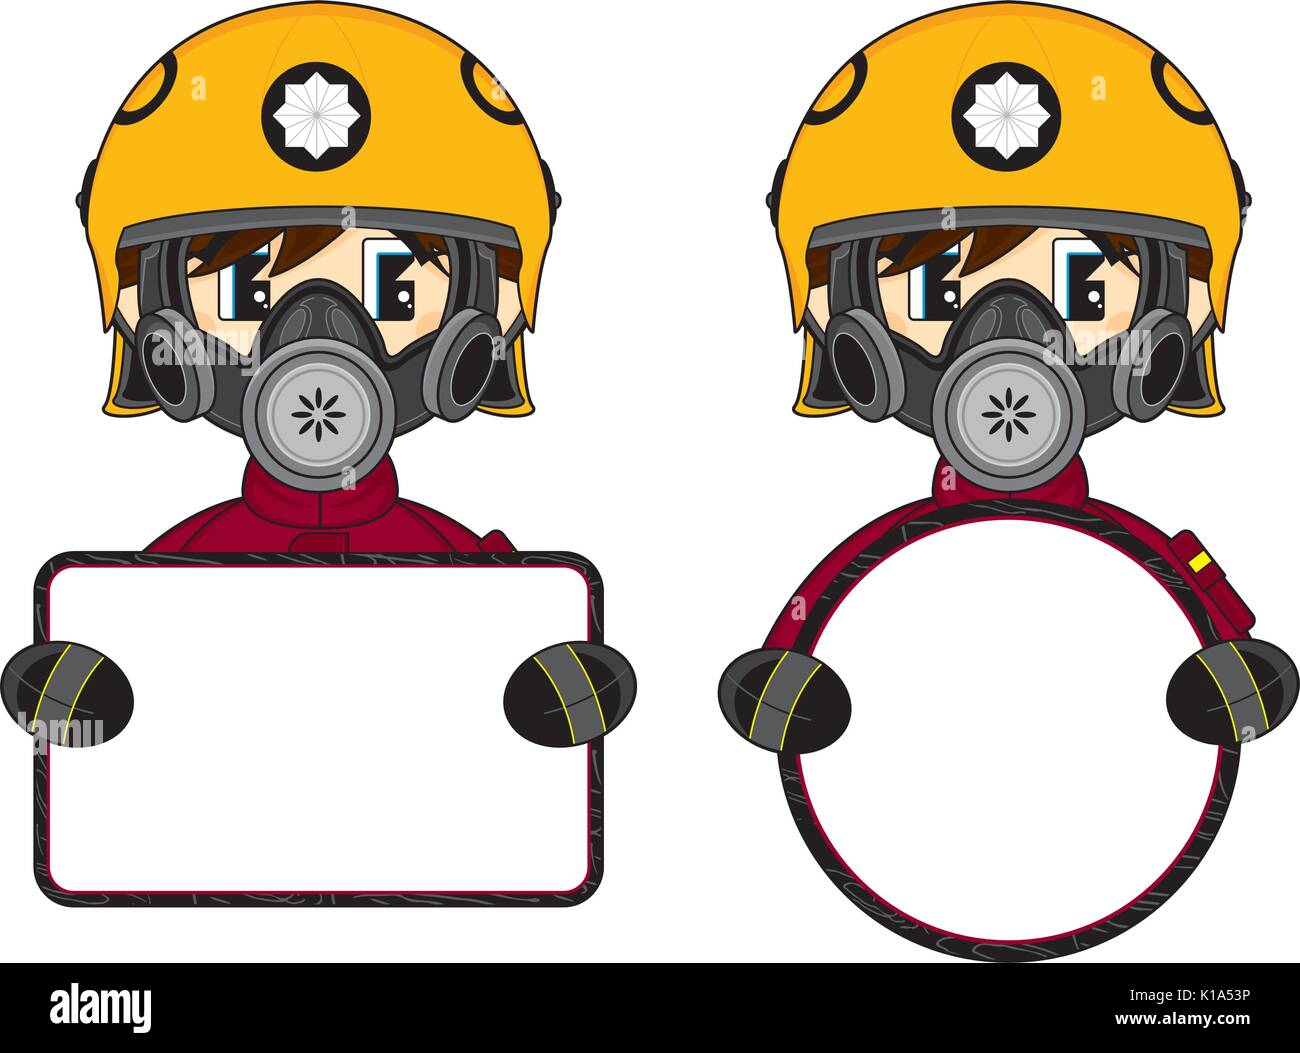 Cartoon Fireman Stock Photos Amp Cartoon Fireman Stock